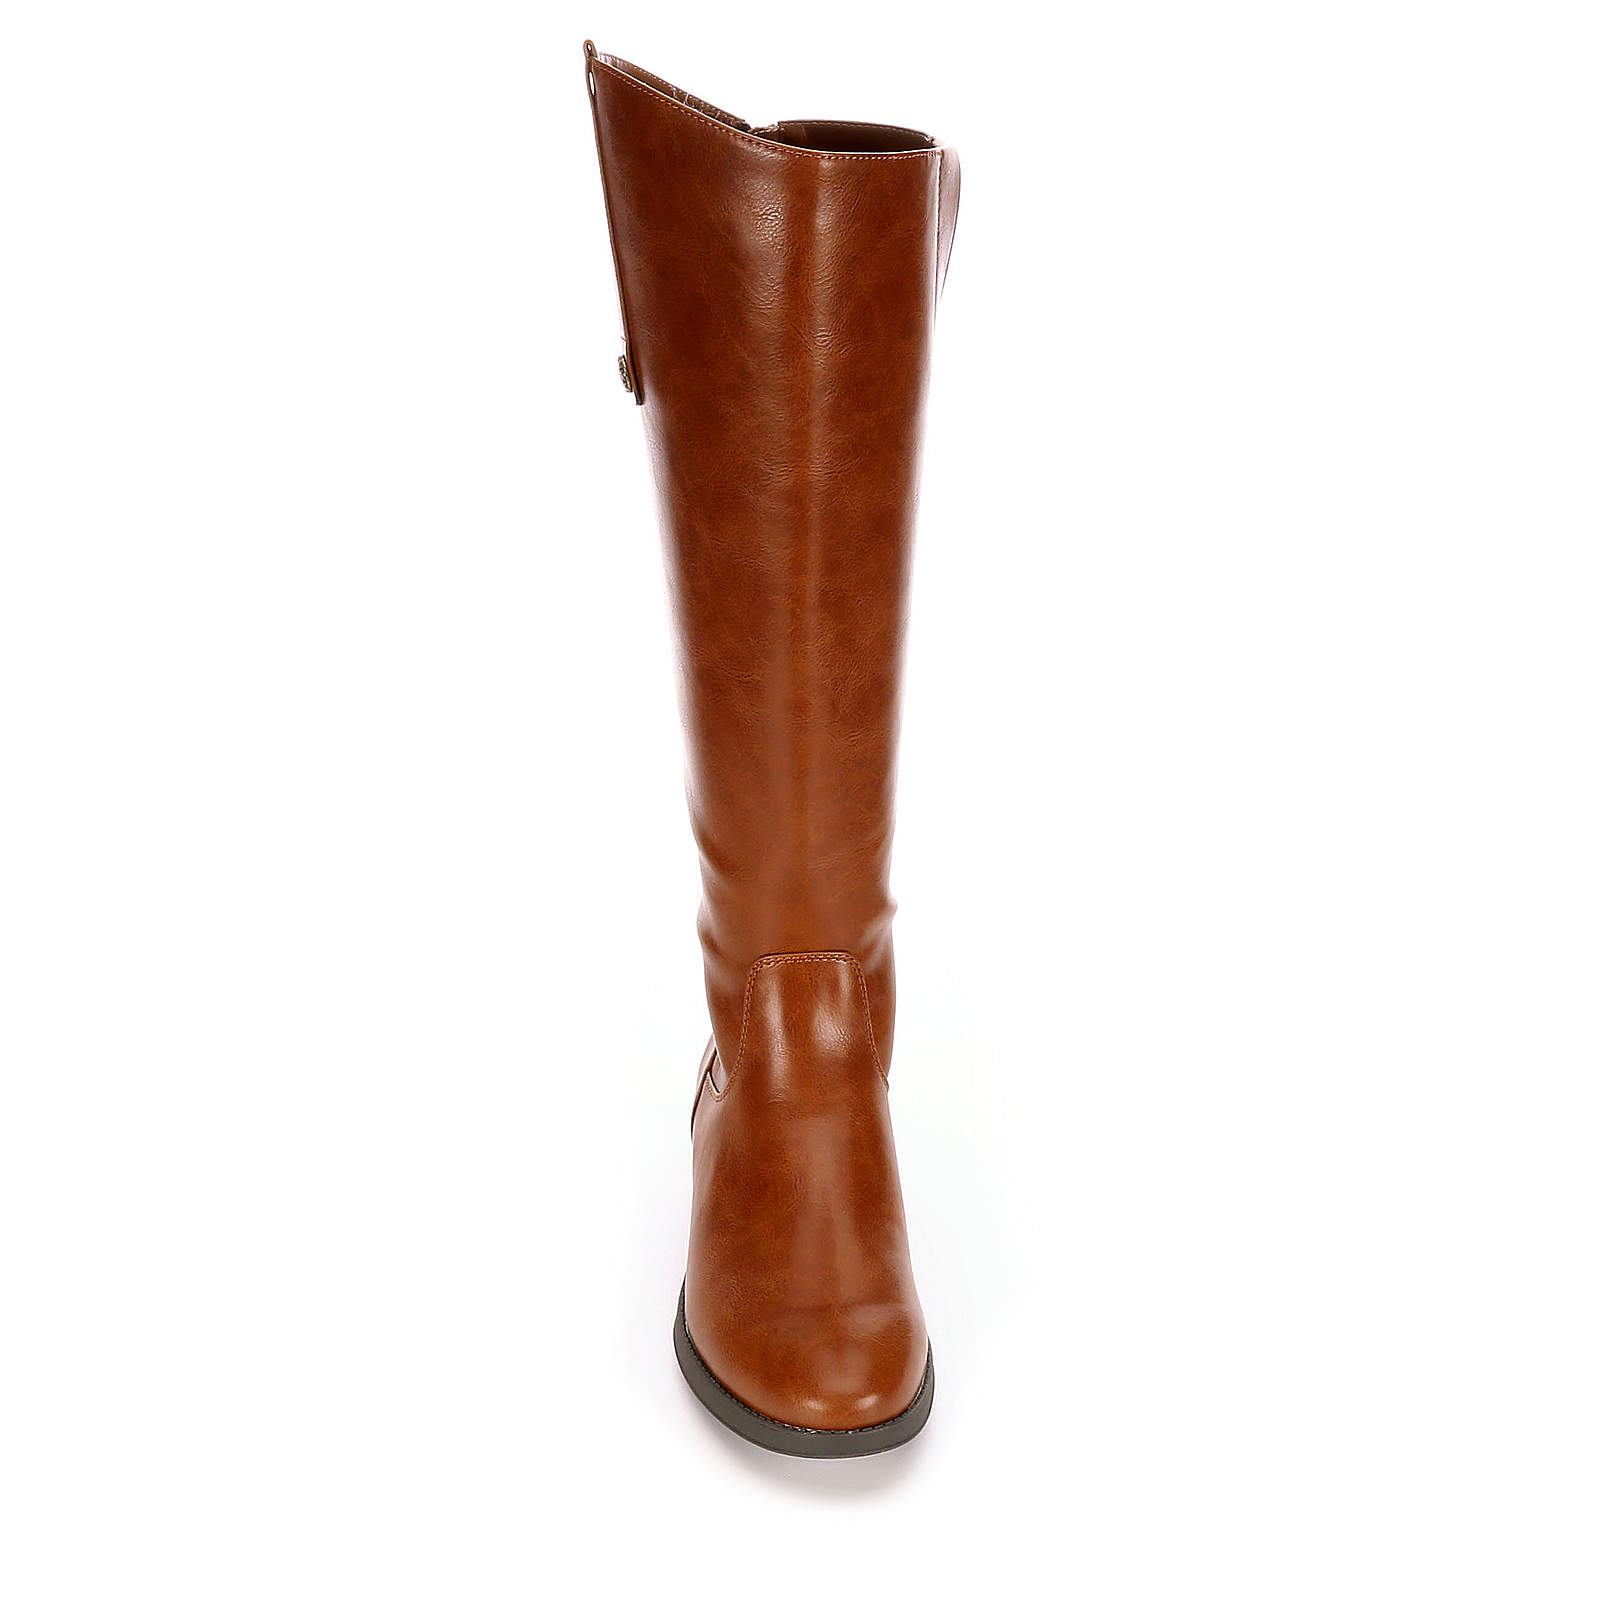 Xappeal Xappeal Xappeal Damenschuhe Emery Knee High Riding Boot Schuhes 059cf8